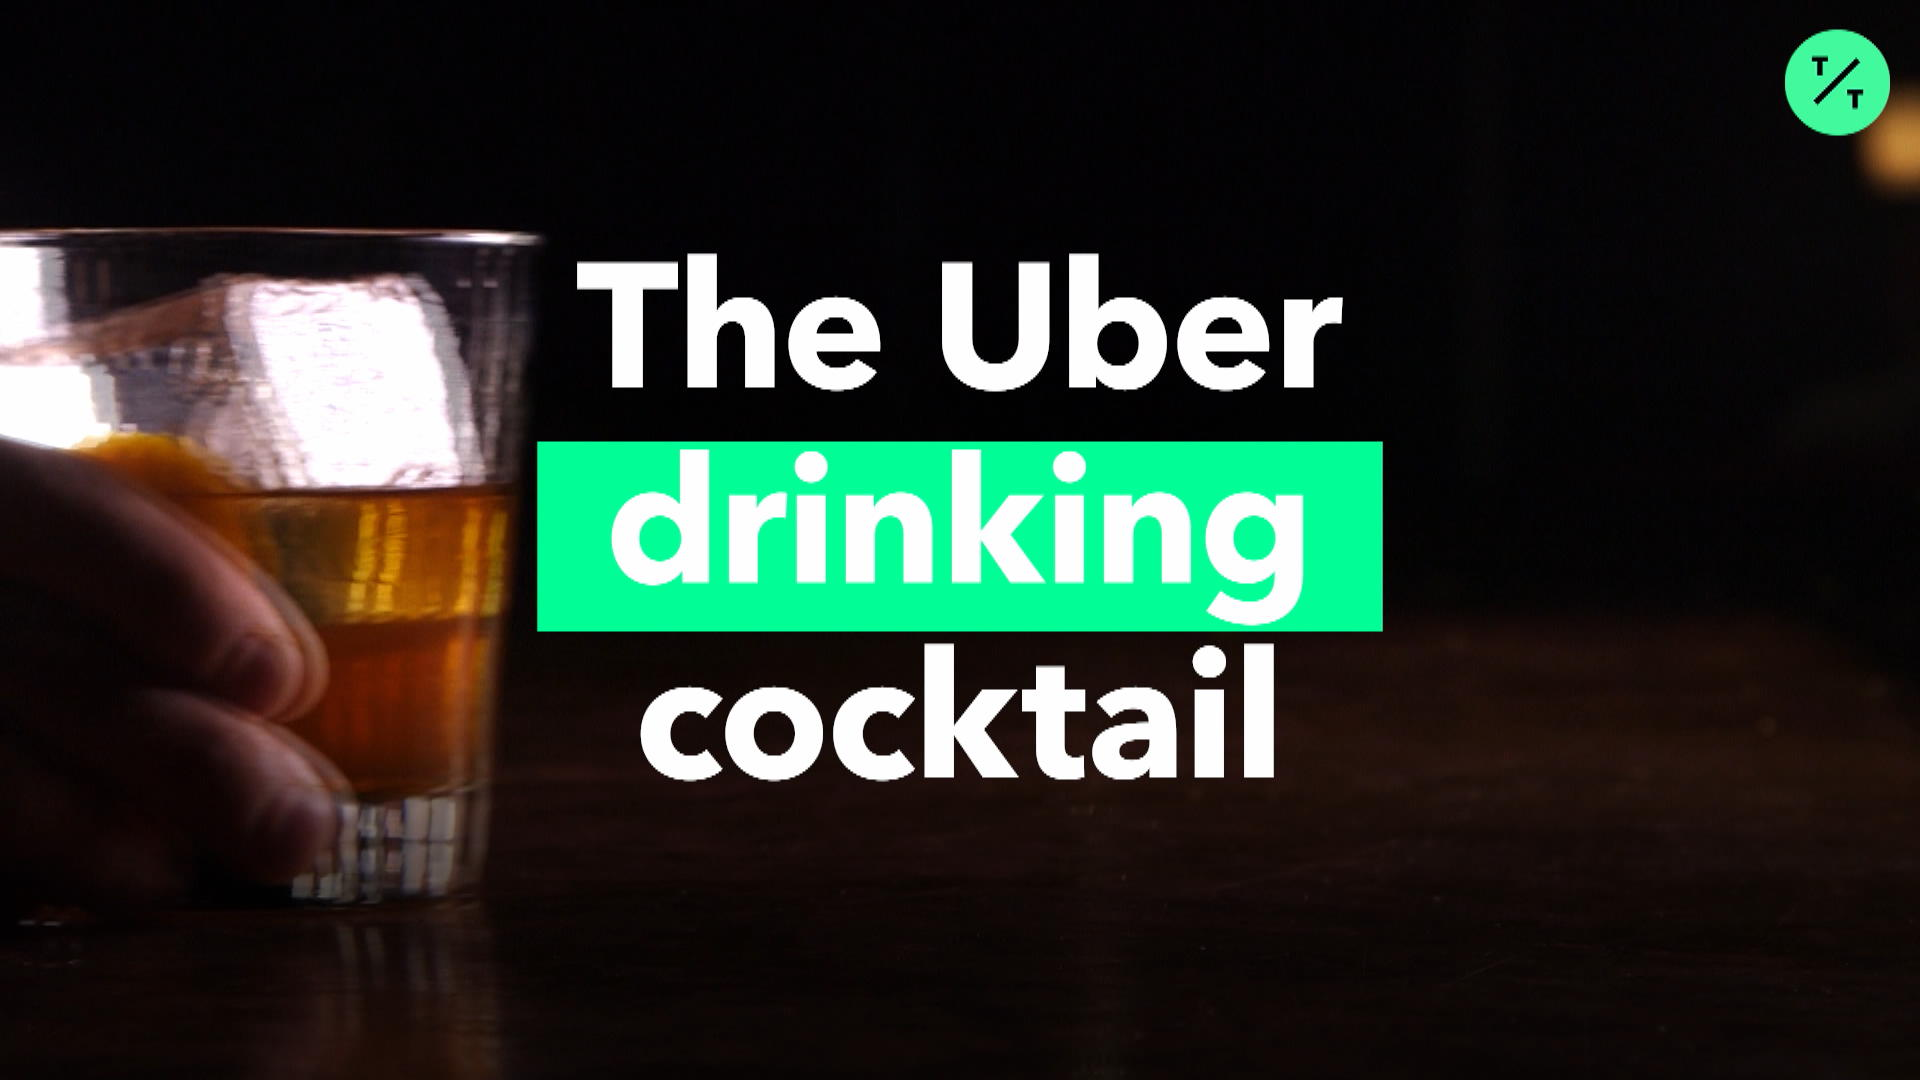 The Uber drinking cocktail